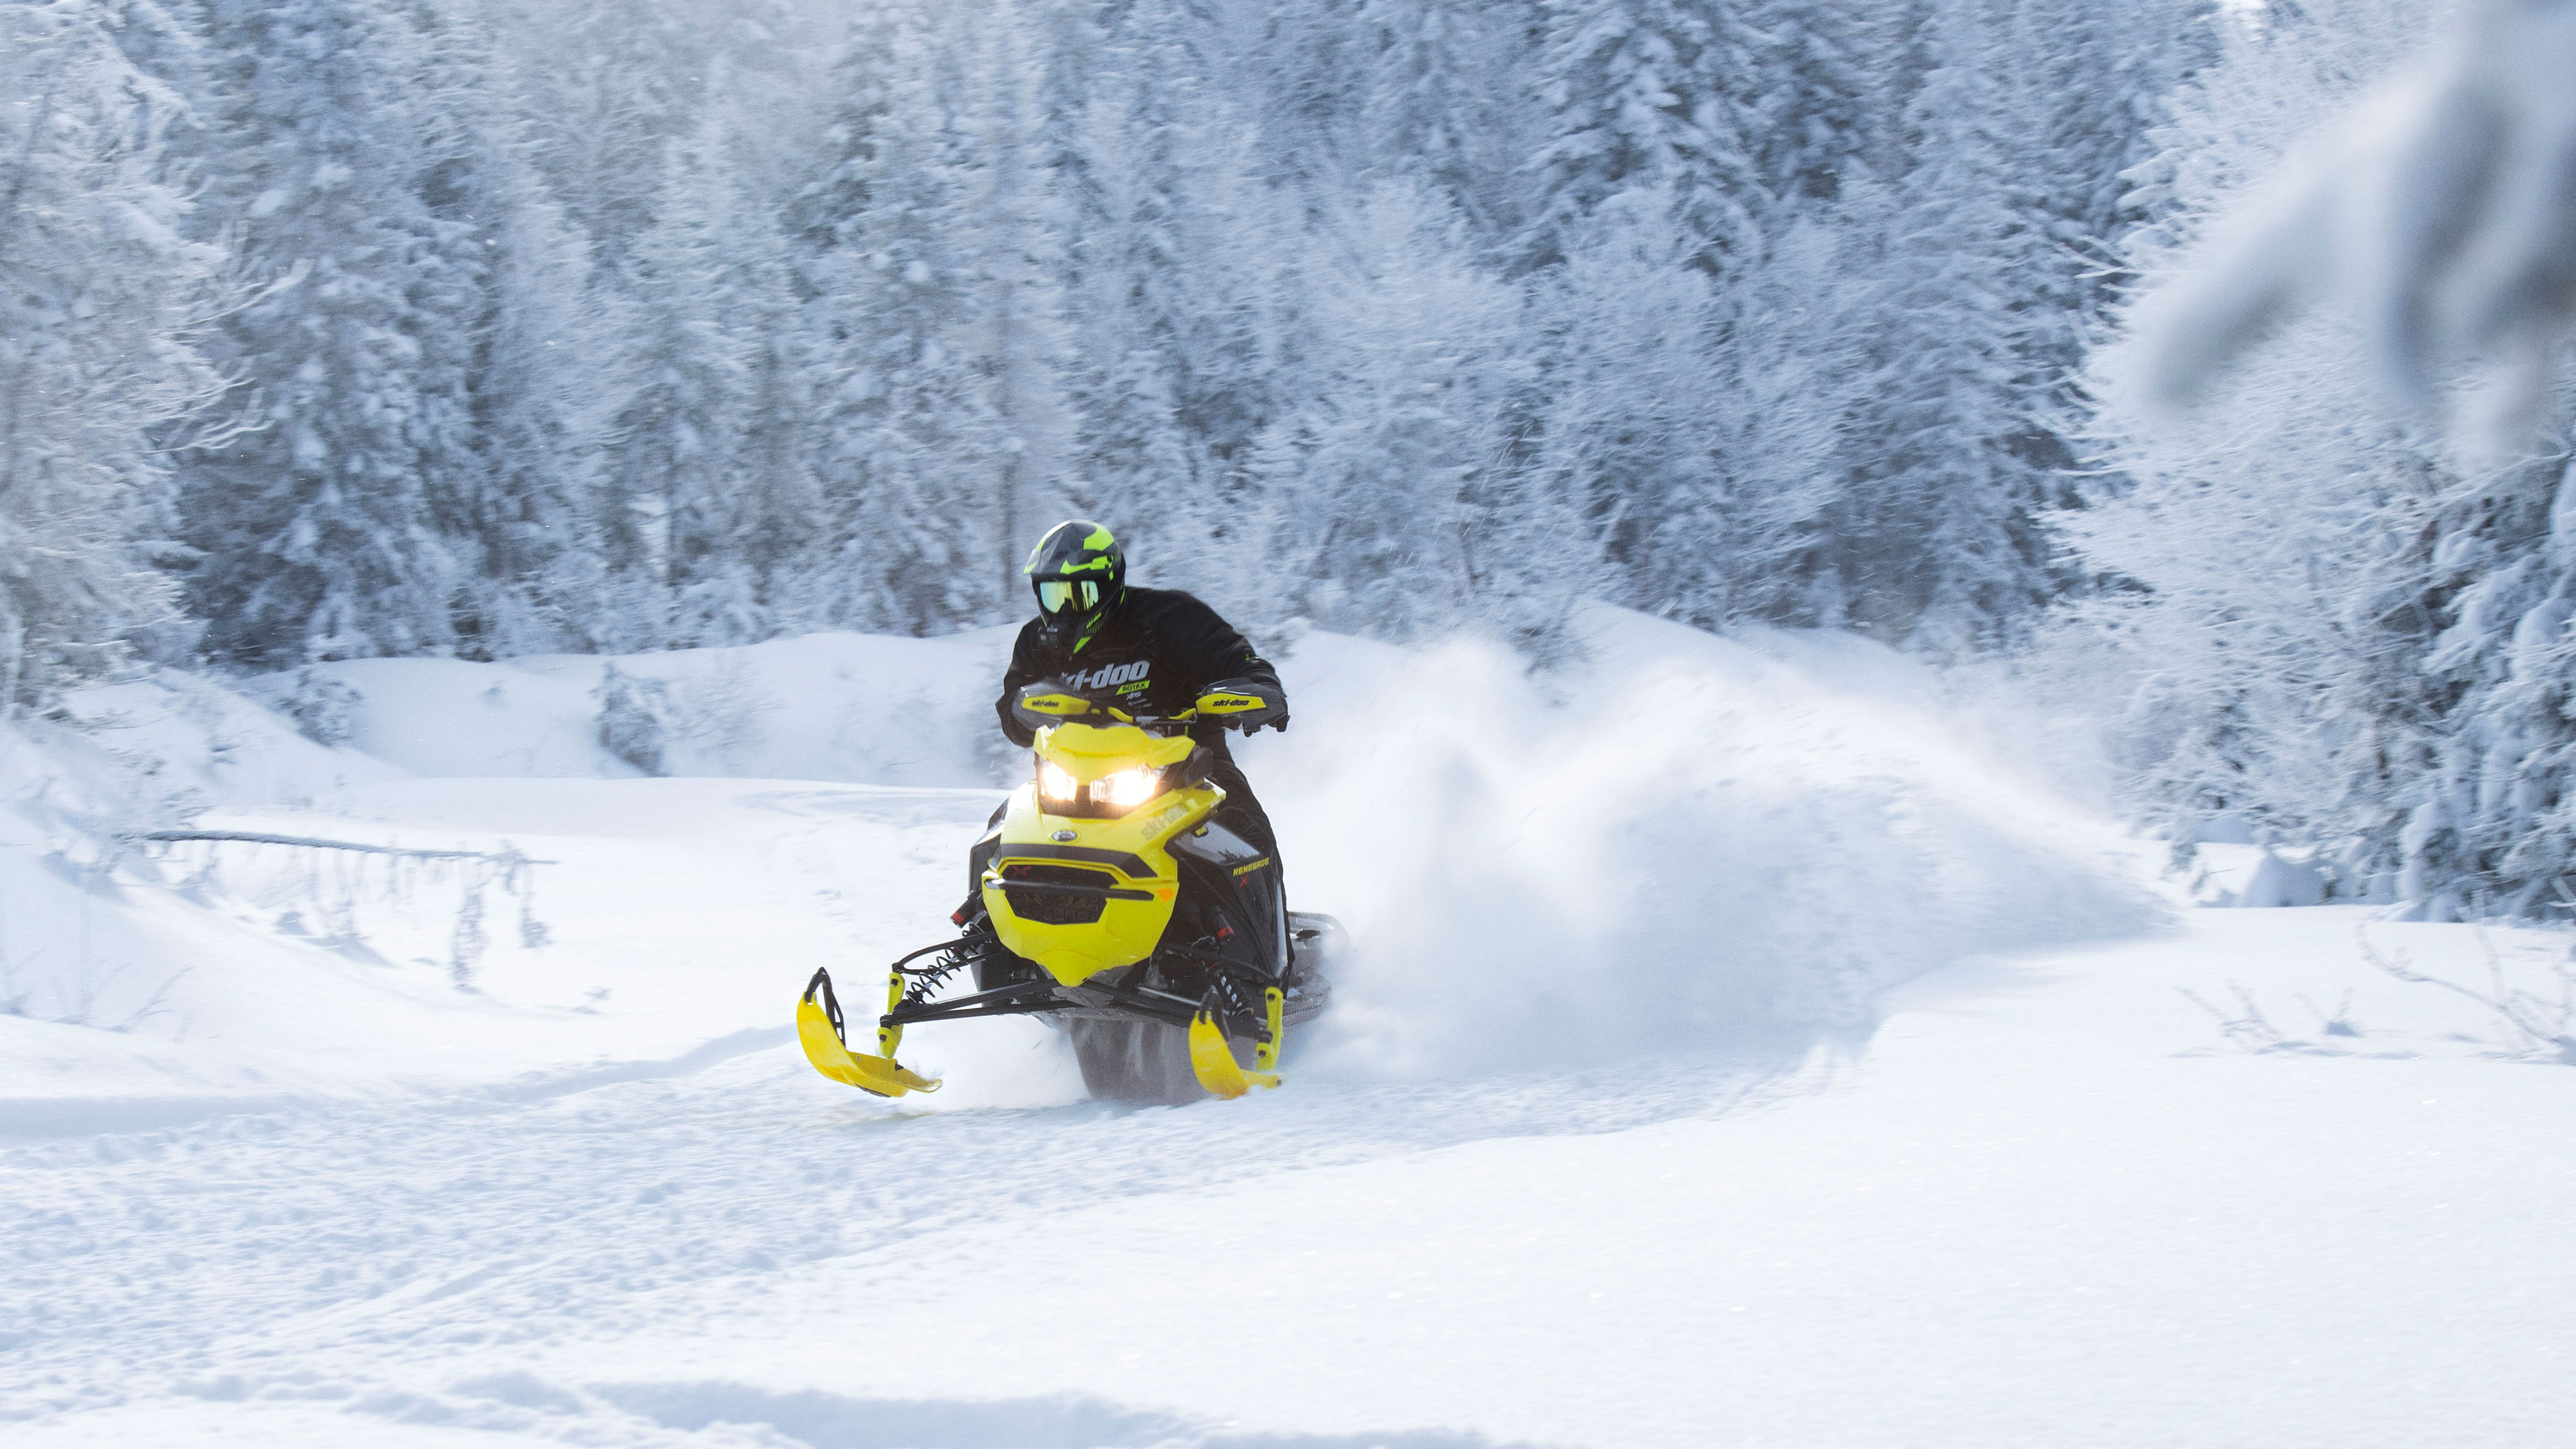 Man riding the new Ski-Doo Renegade on a trail